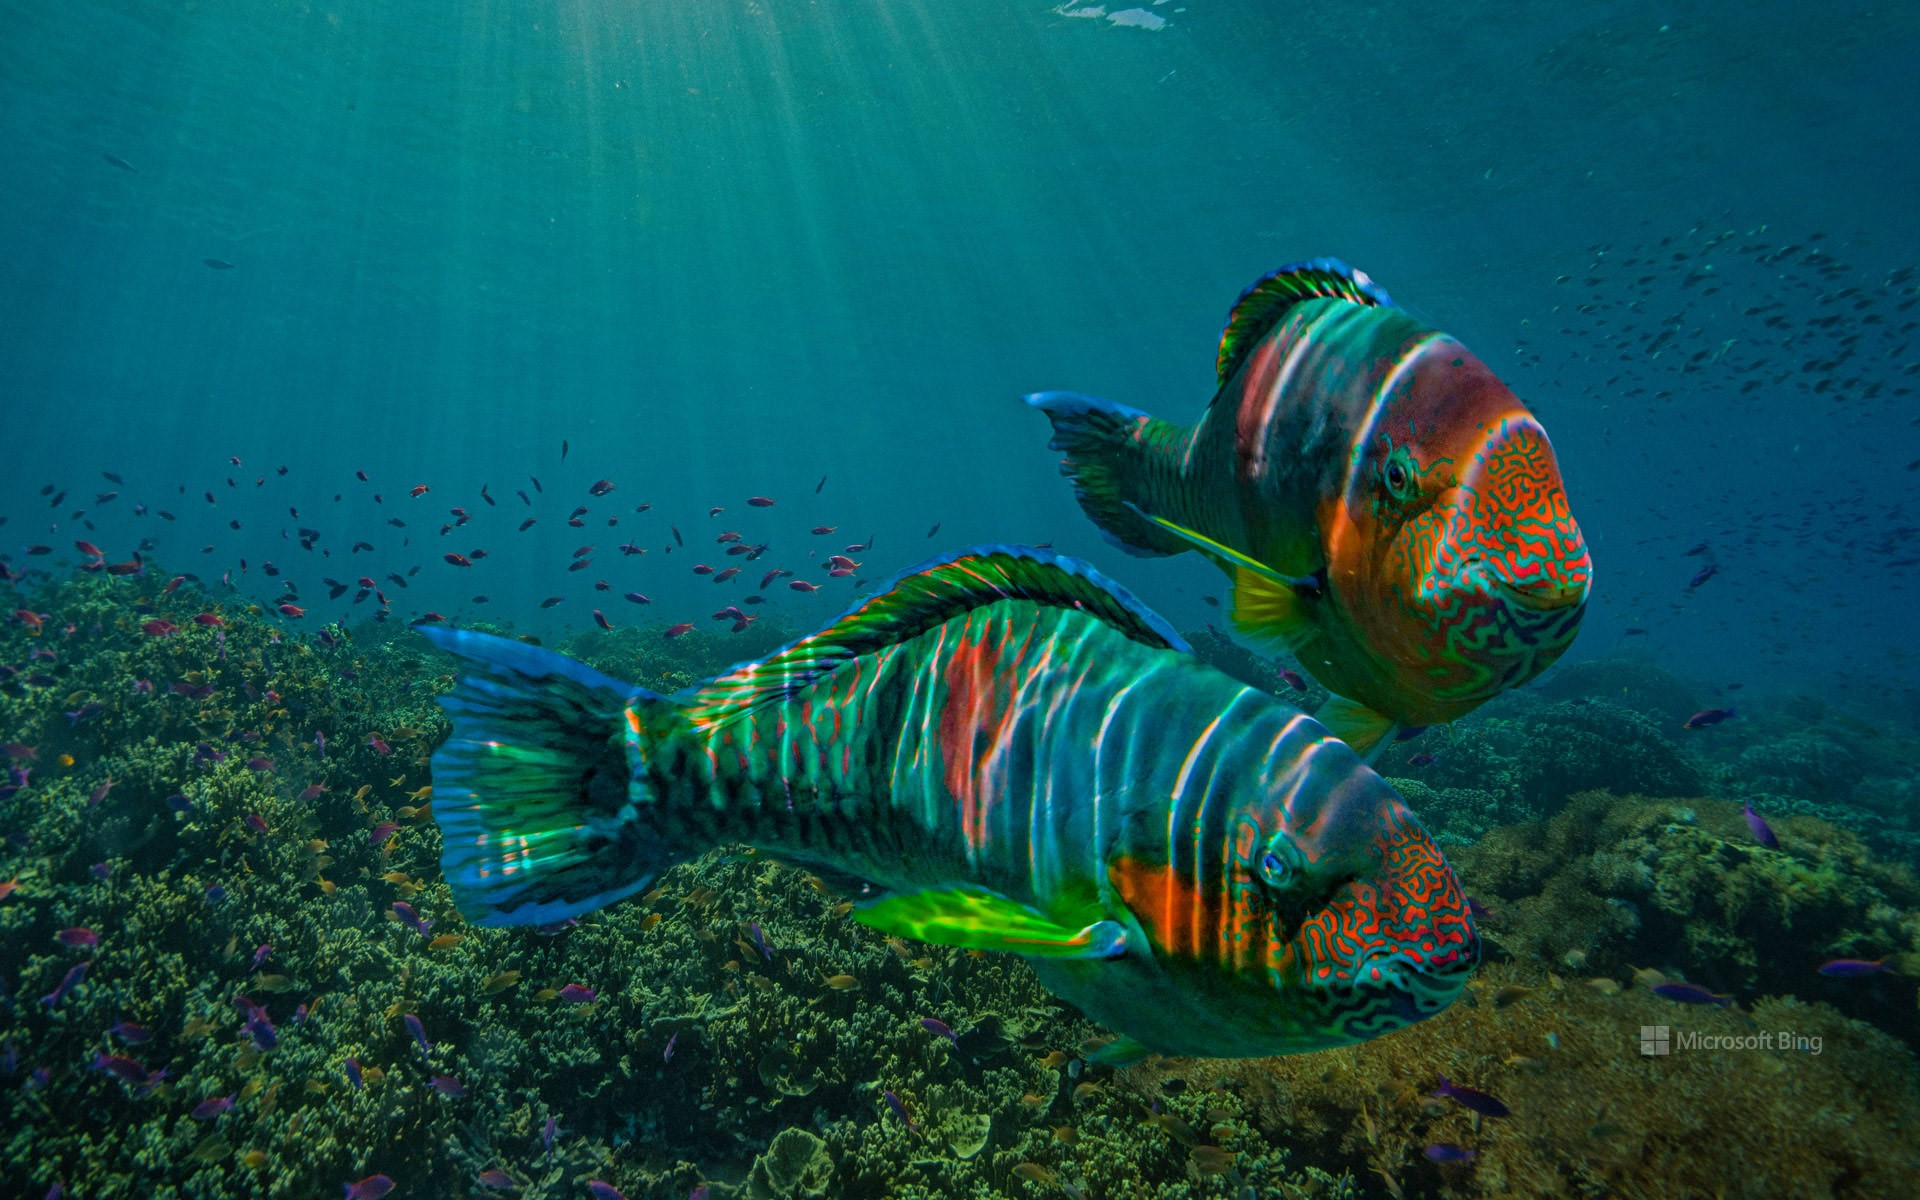 Parrotfish off the coast of Negros Oriental province, Philippines